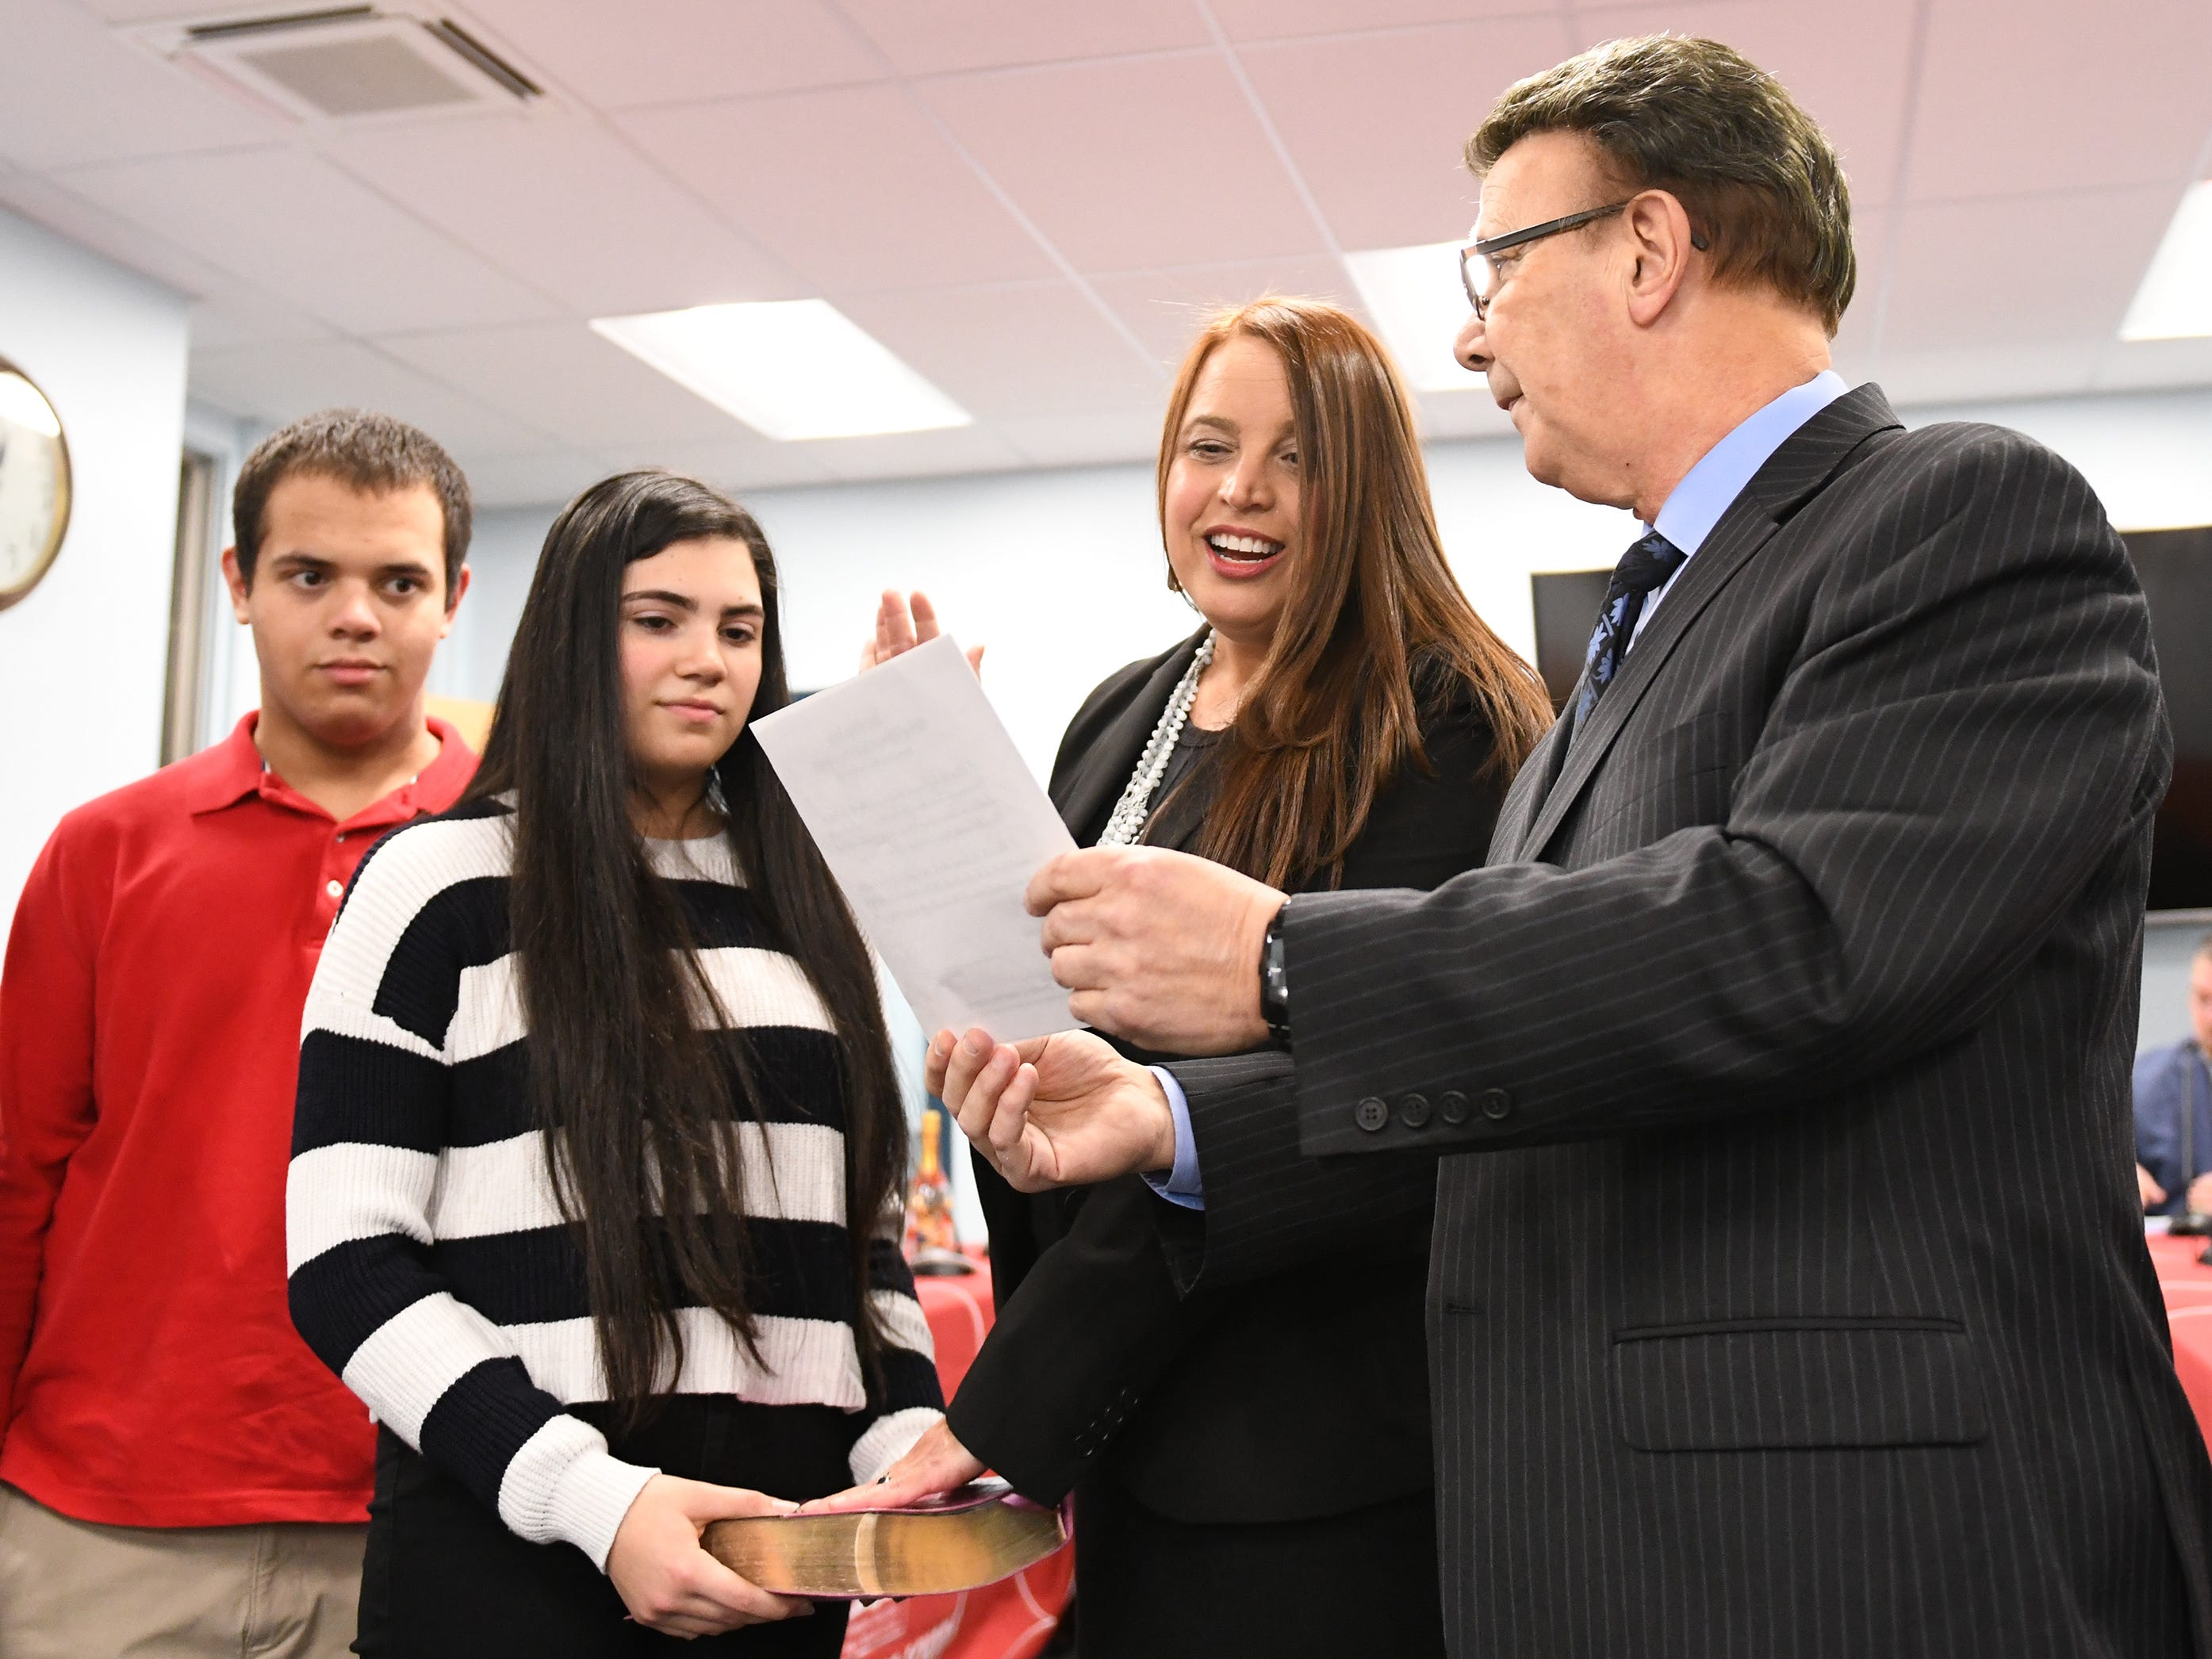 Inez Acosta takes the oath of office during a Vineland Board of Education reorganization meeting. Her daughter Lianna Vazquez holds the bible while her son Jake Cruz takes part in the ceremony. Robert DeSanto (right) holds the oath on Wednesday, January 2, 2019.